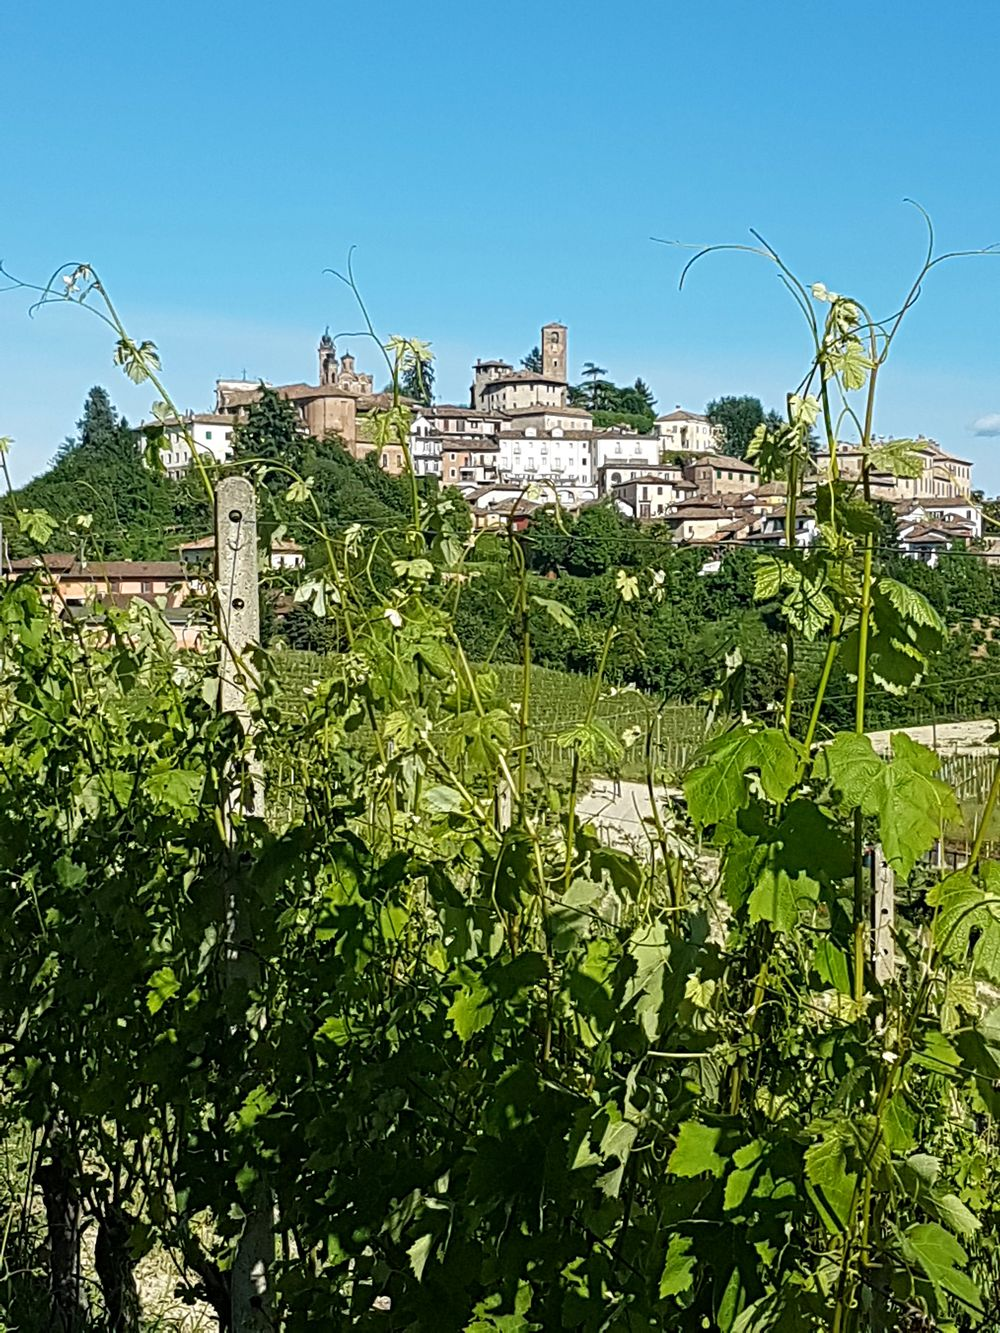 No People Outdoors Sky Agriculture Day Rural Scene Building Exterior Architecture Langhe Piedmont Italy Vineyard Travel Destinations Italy Landscape Borghipiúbelliditalia